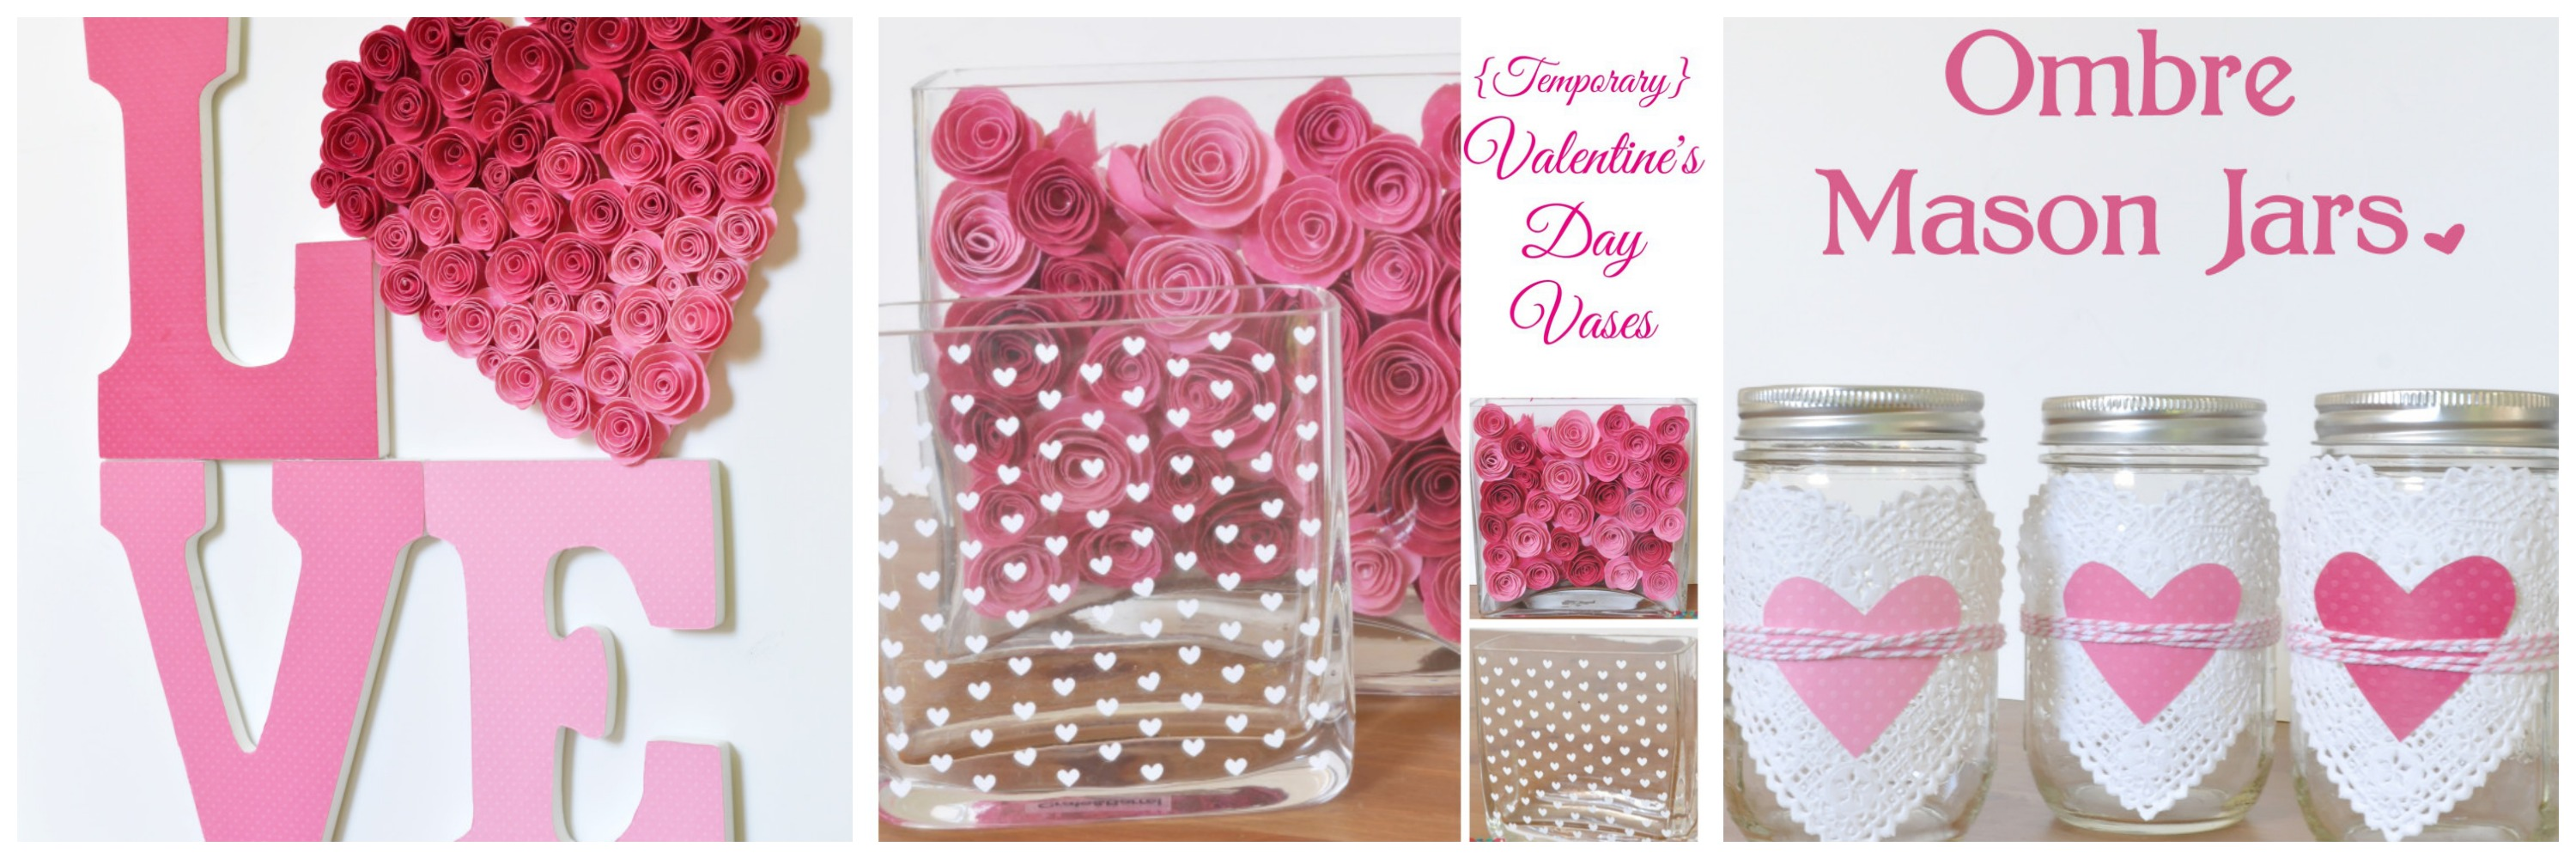 Valentines day vases the love nerds the love nerds valentines day decor with pink ombre and hearts the love reviewsmspy